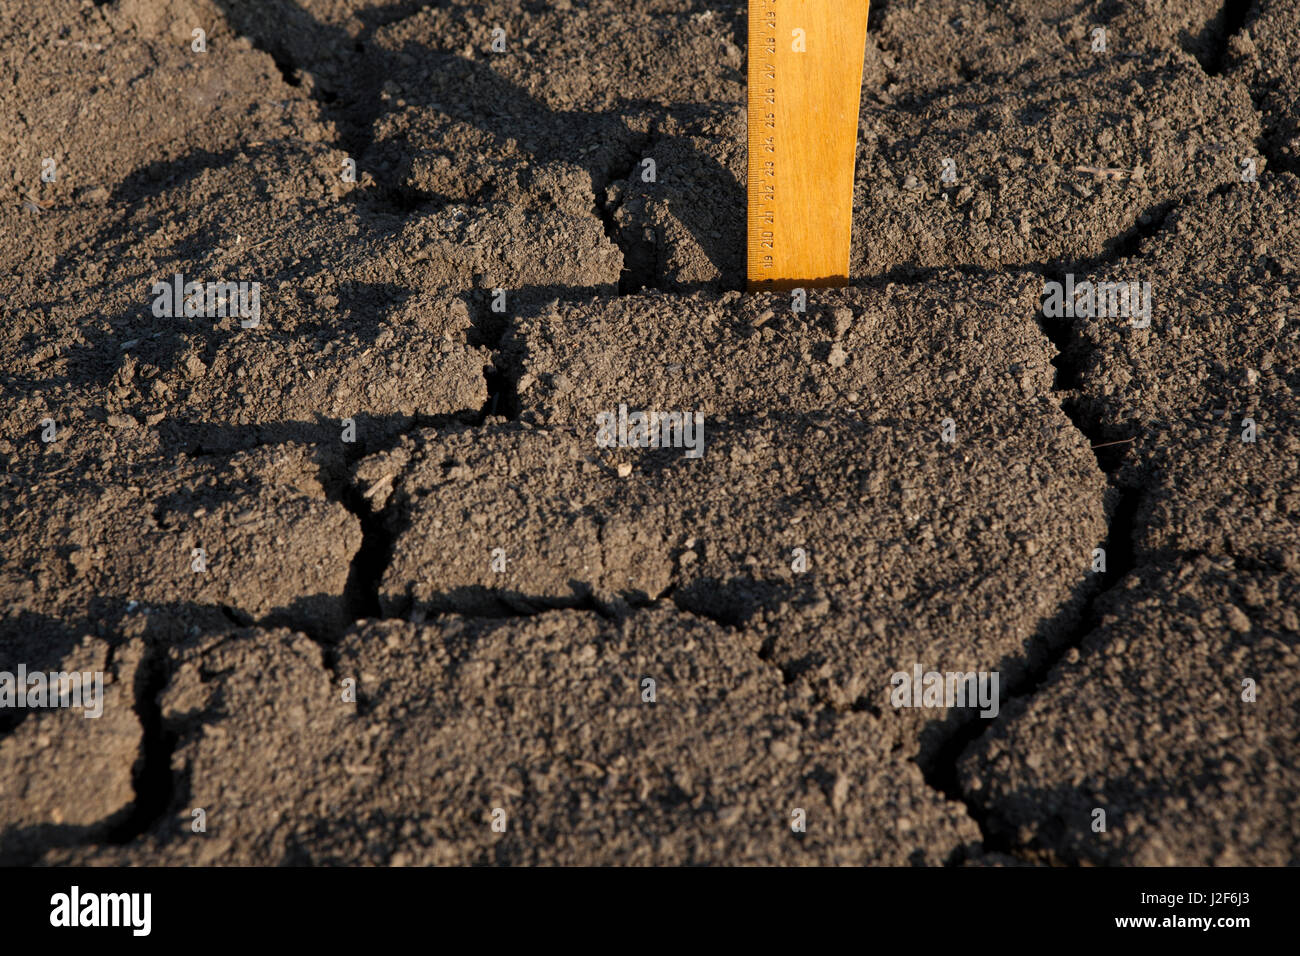 Clay Soil Stock Photos & Clay Soil Stock Images - Alamy